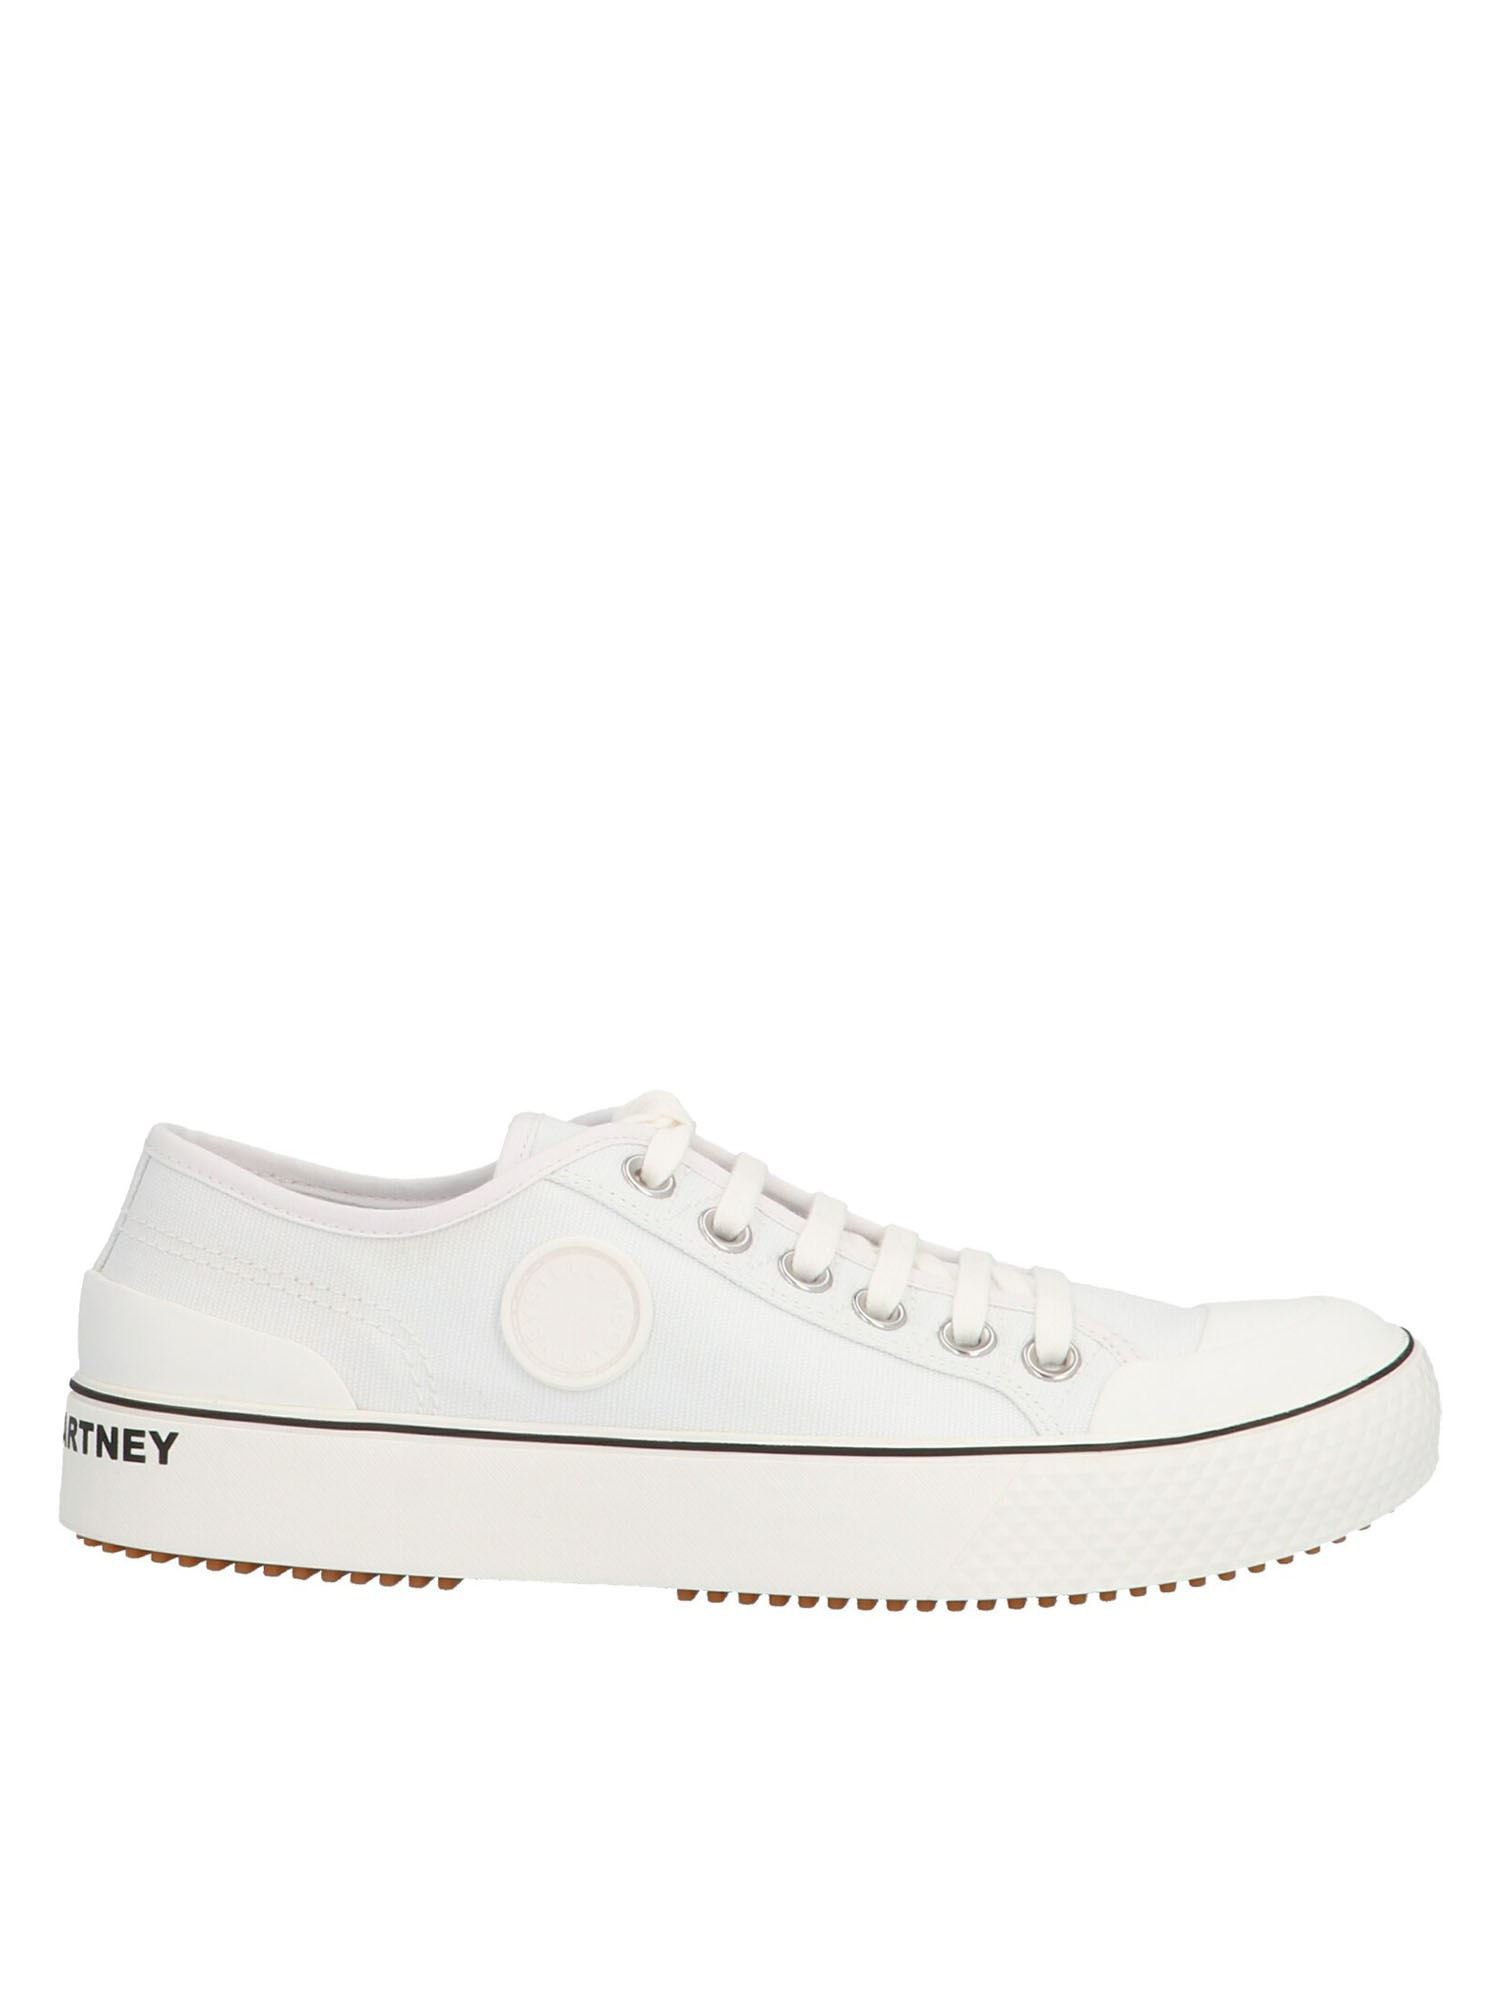 Stella Mccartney STELLA MCCARTNEY LOGO LETTERING SNEAKERS IN WHITE